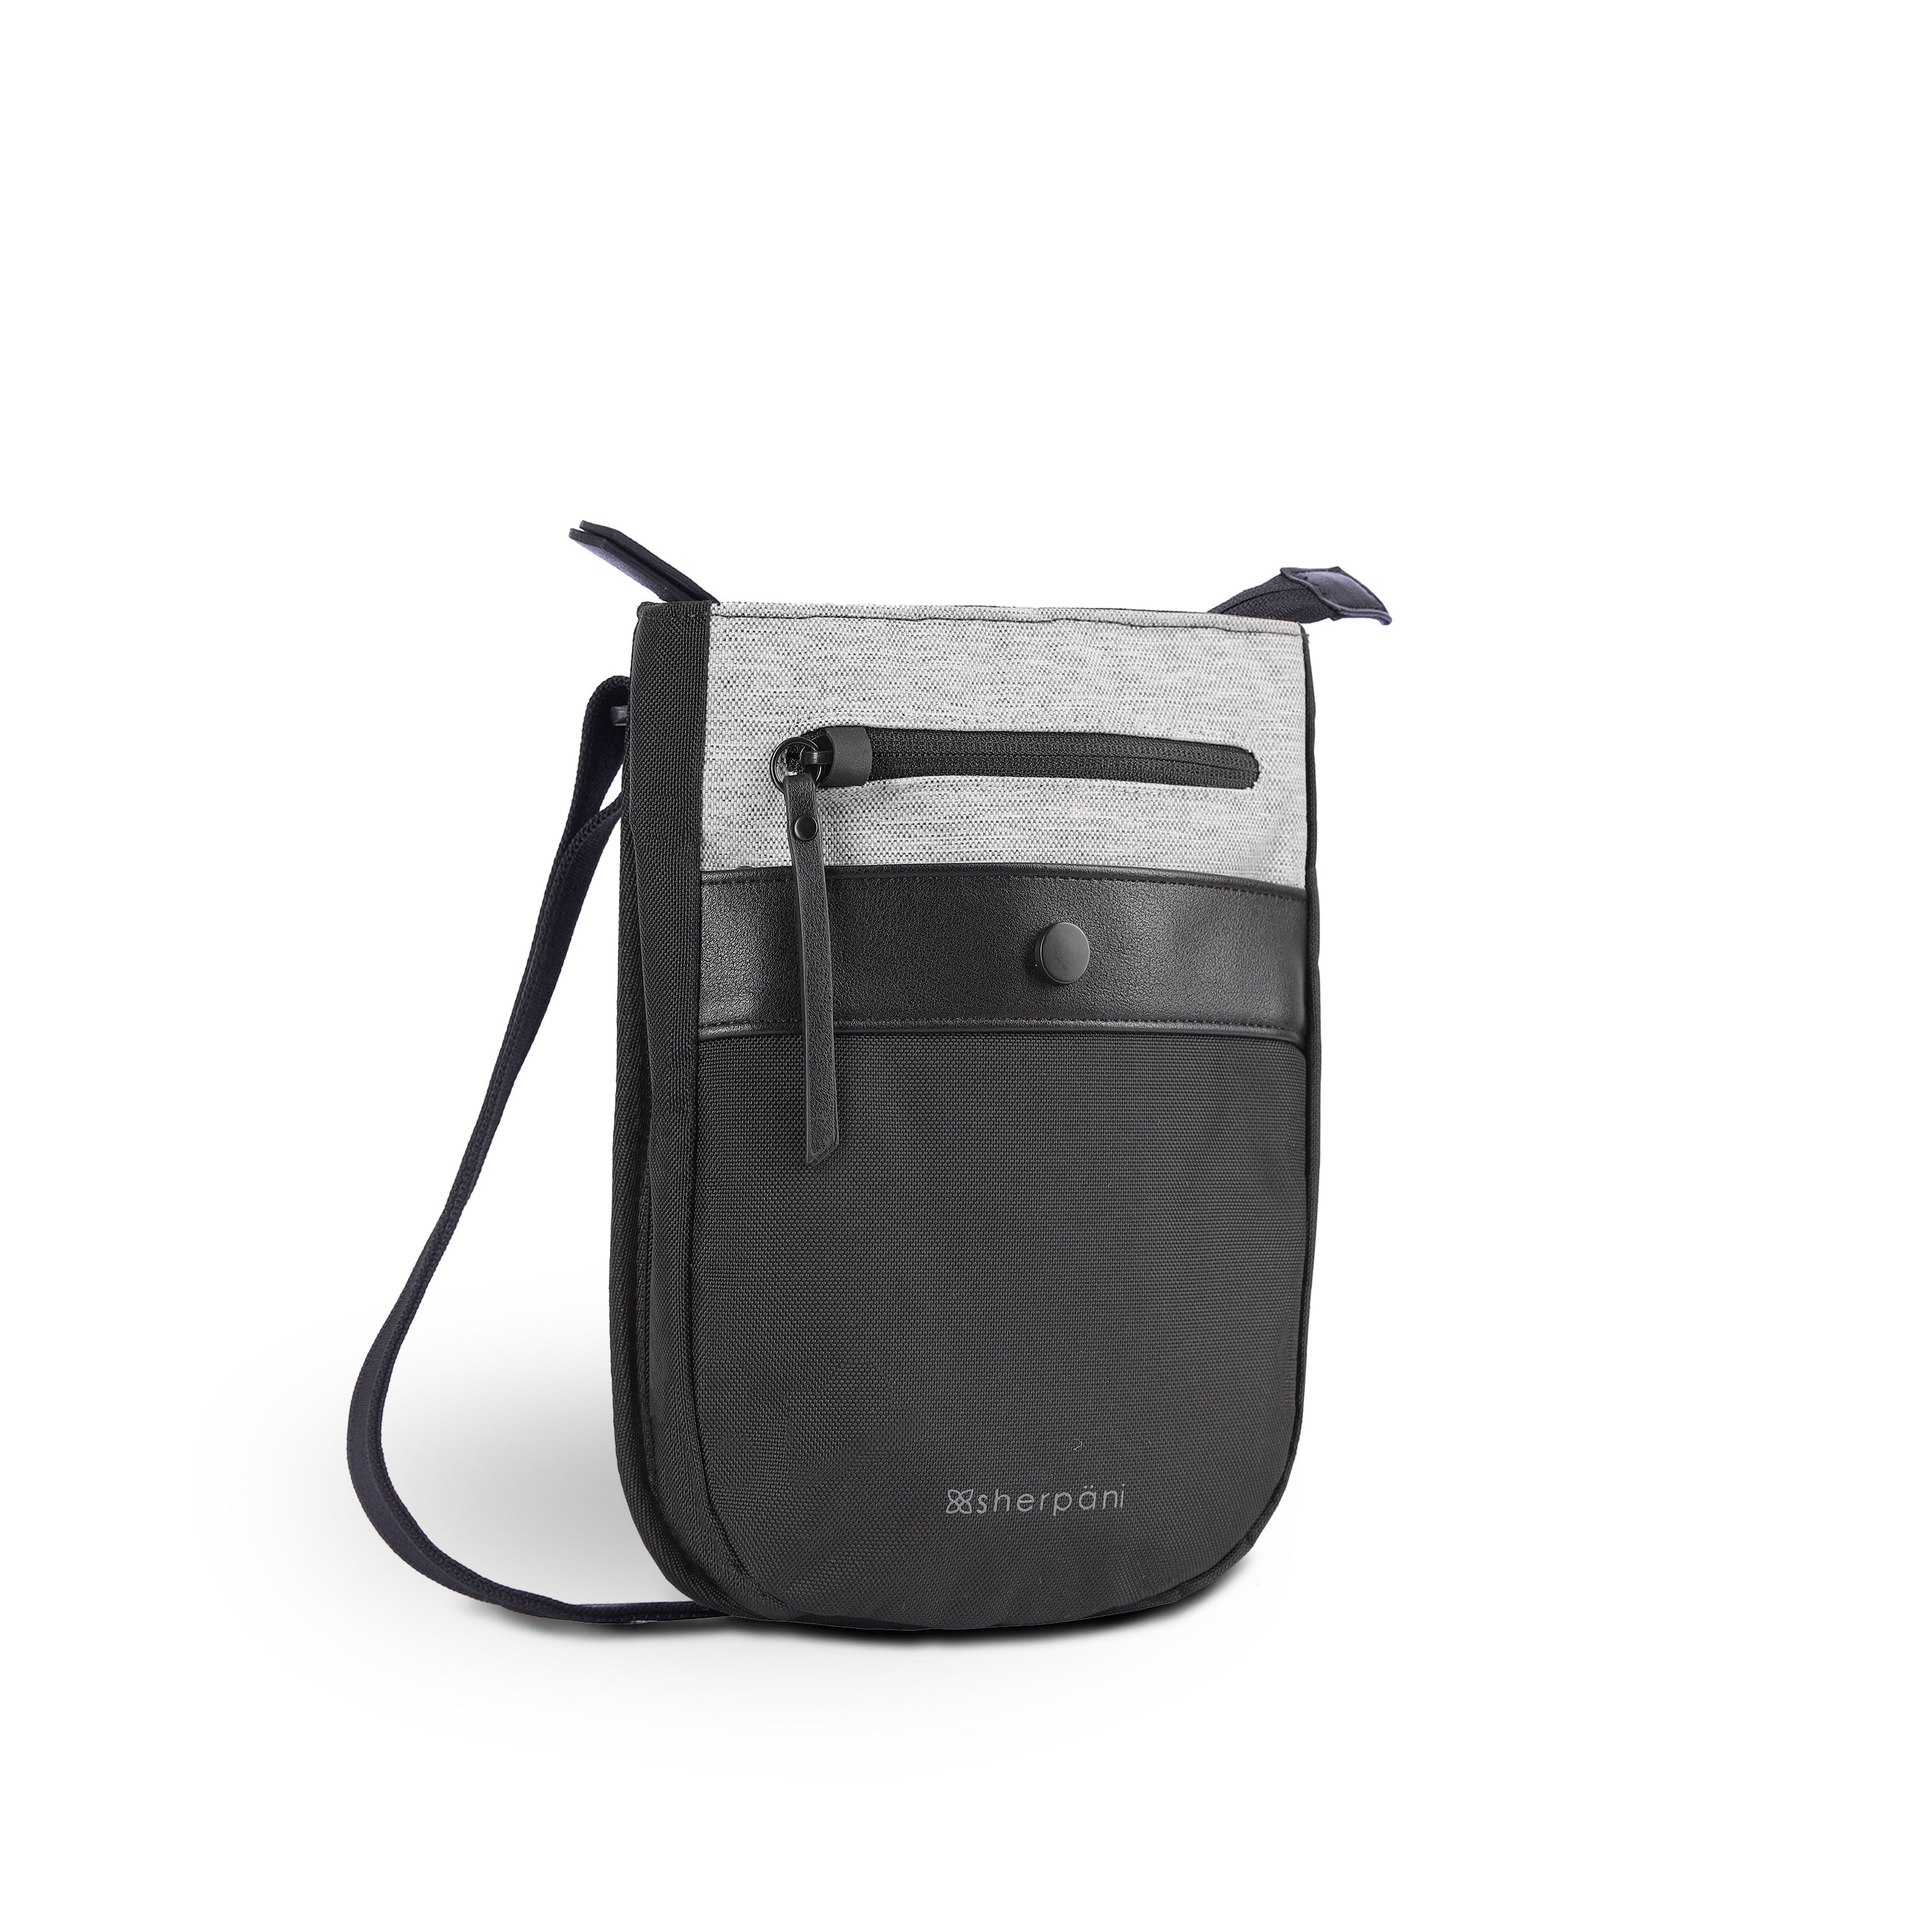 White Anti-theft Crossbody (3/4 Side) with anti-theft features